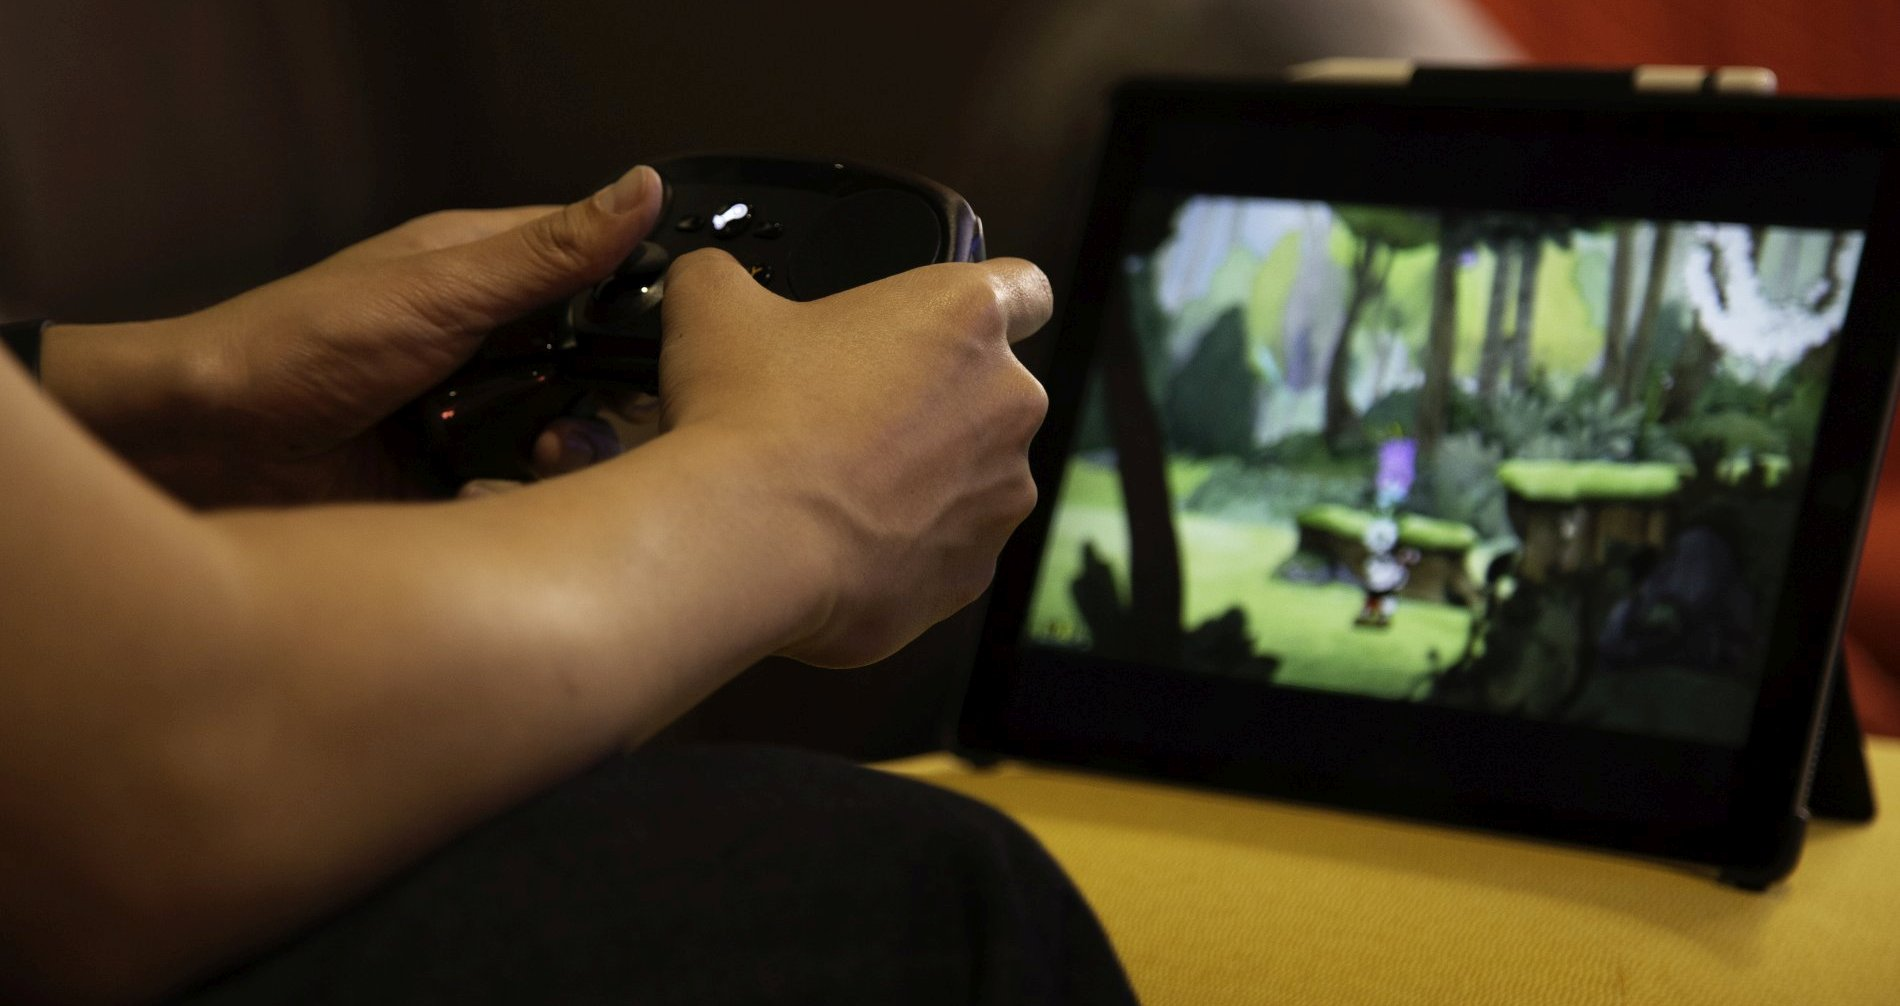 TouchArcade Goes Hands-On With Valve's Steam Link App: 'This is the